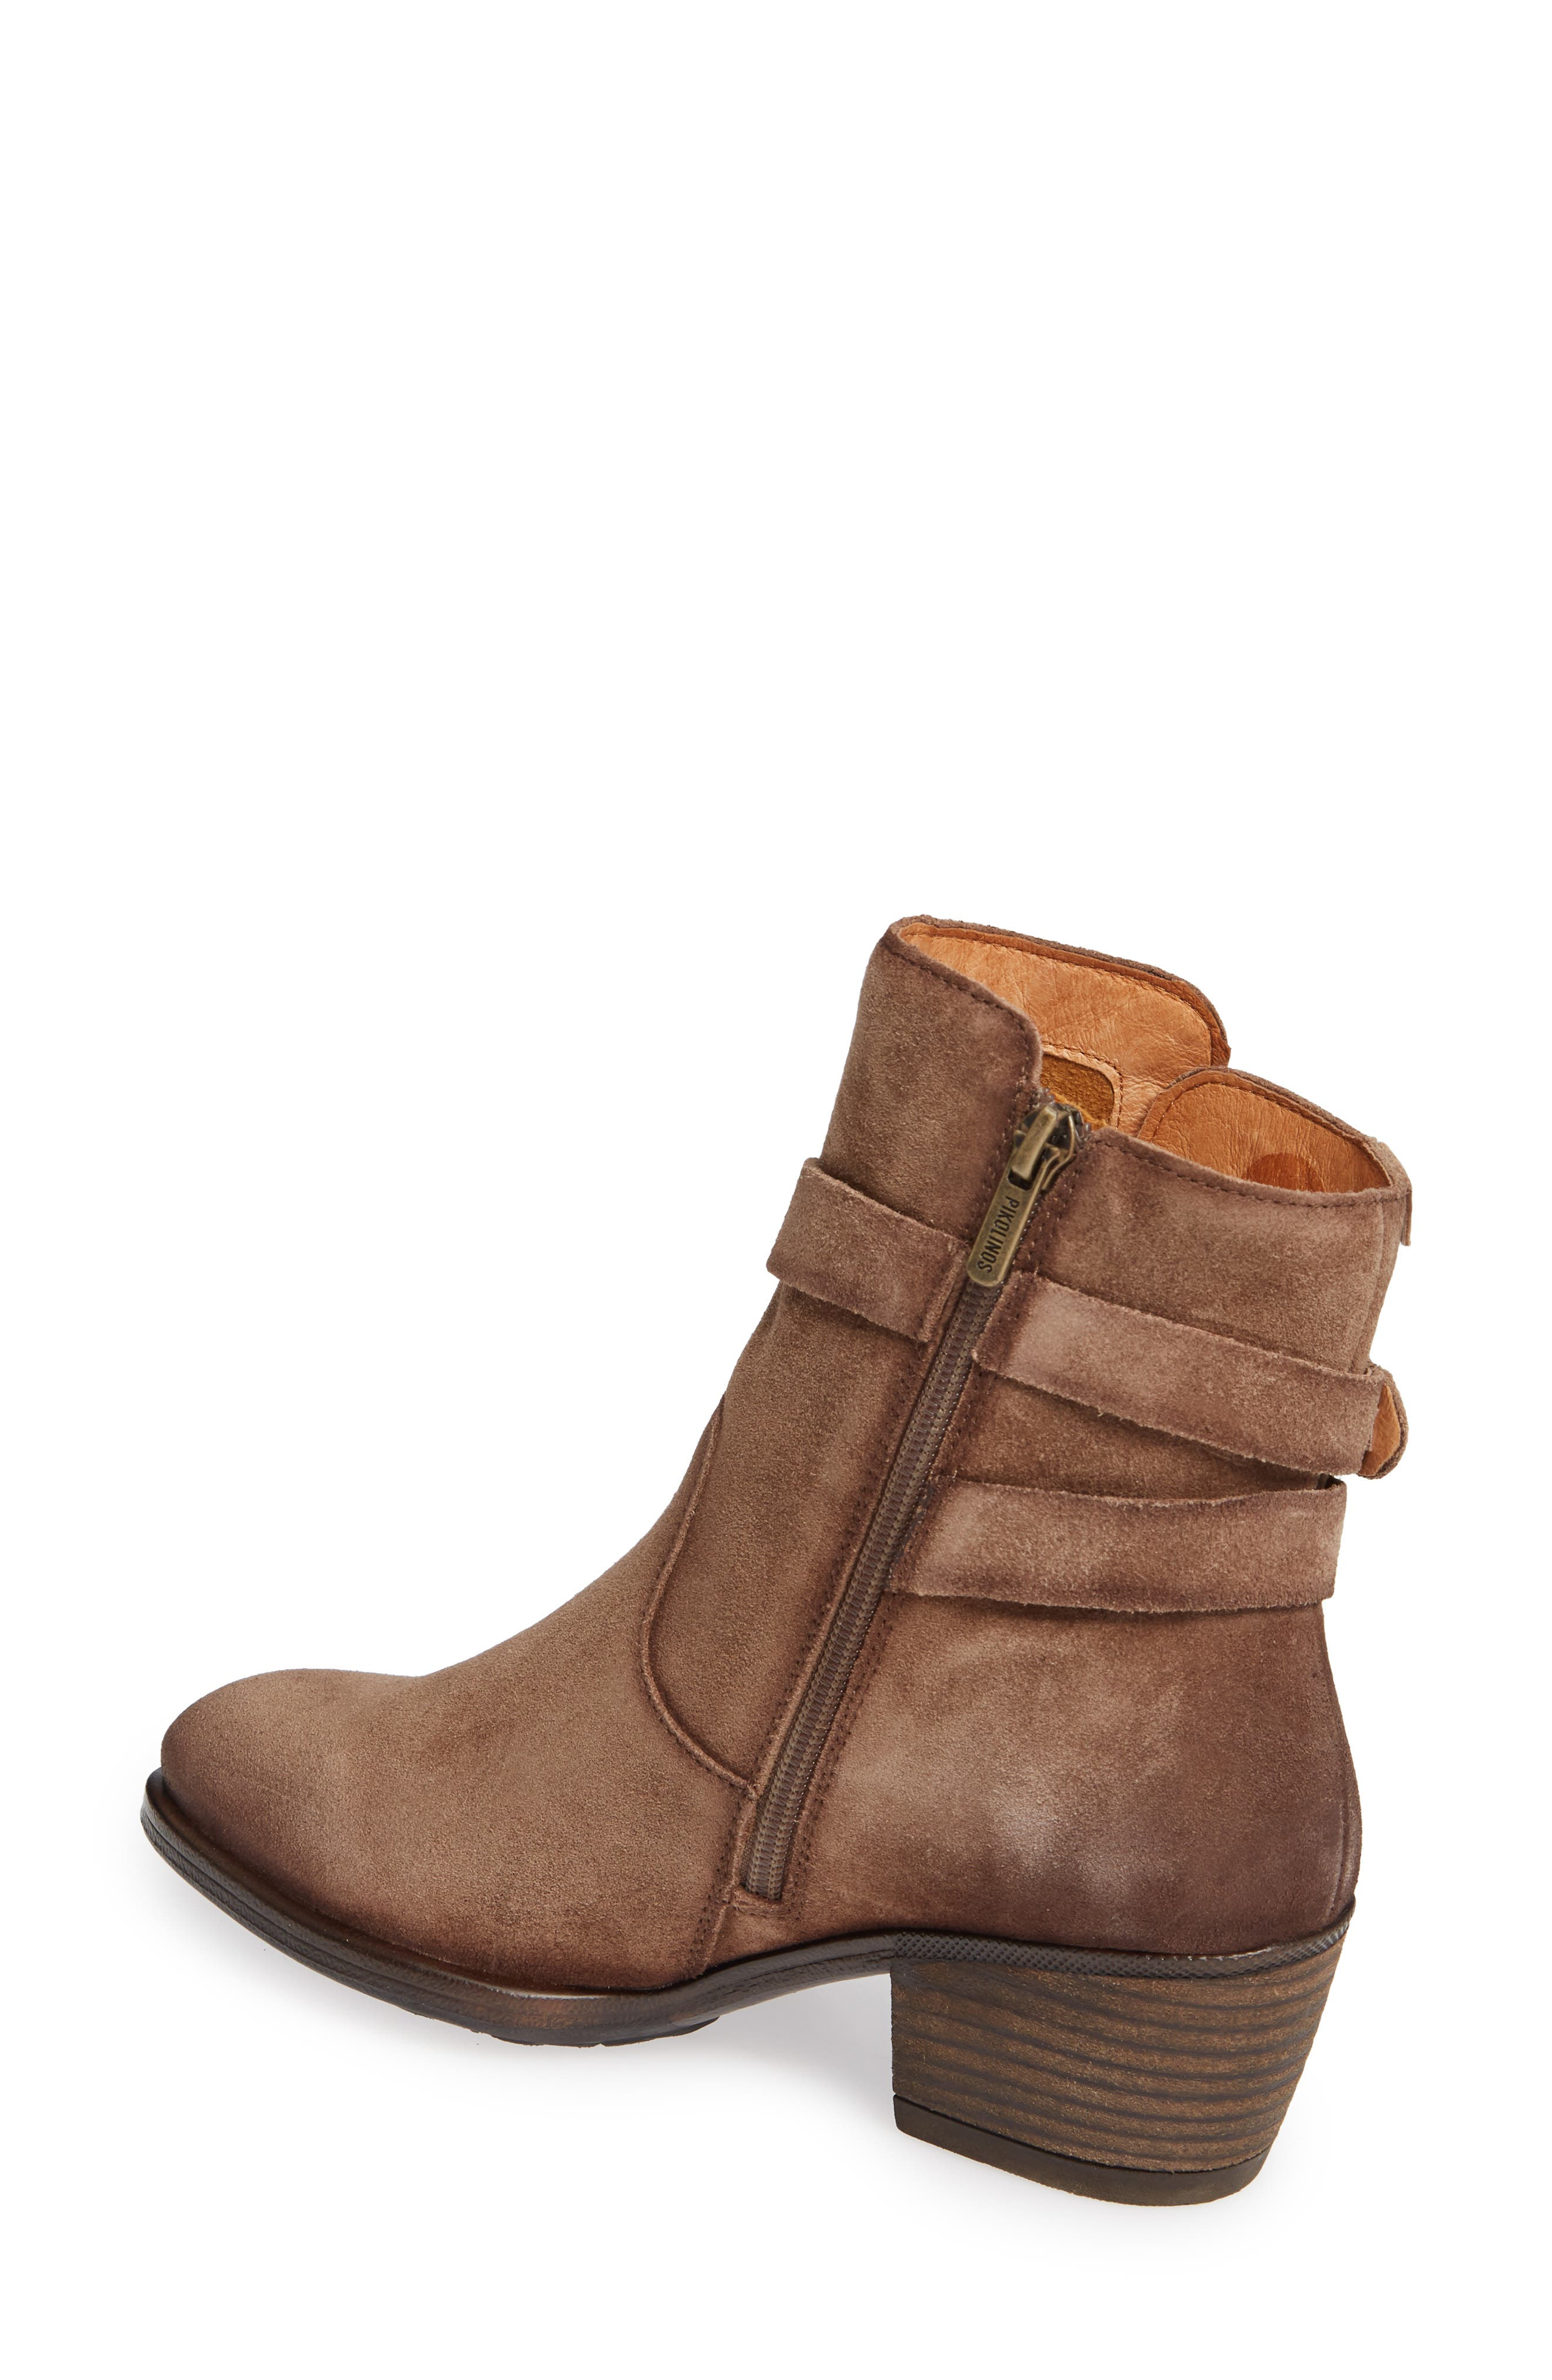 Baqueira Belted Bootie,                             Alternate thumbnail 2, color,                             STONE SUEDE